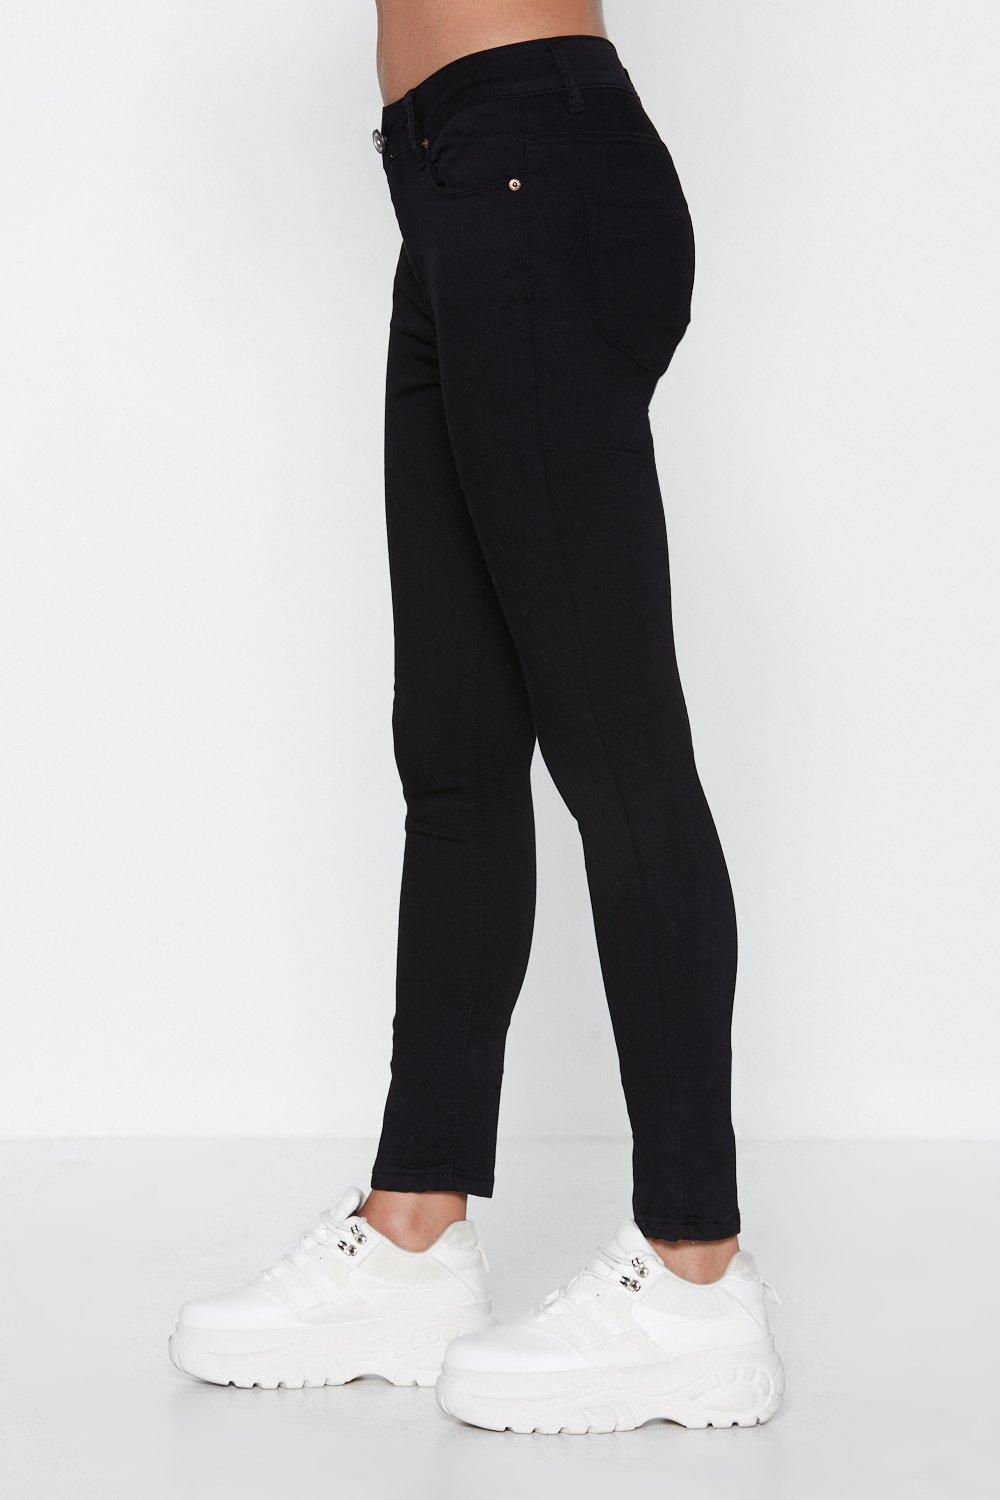 a4b8913bd1 A Leg in the Door Skinny Jeans | Shop Clothes at Nasty Gal!